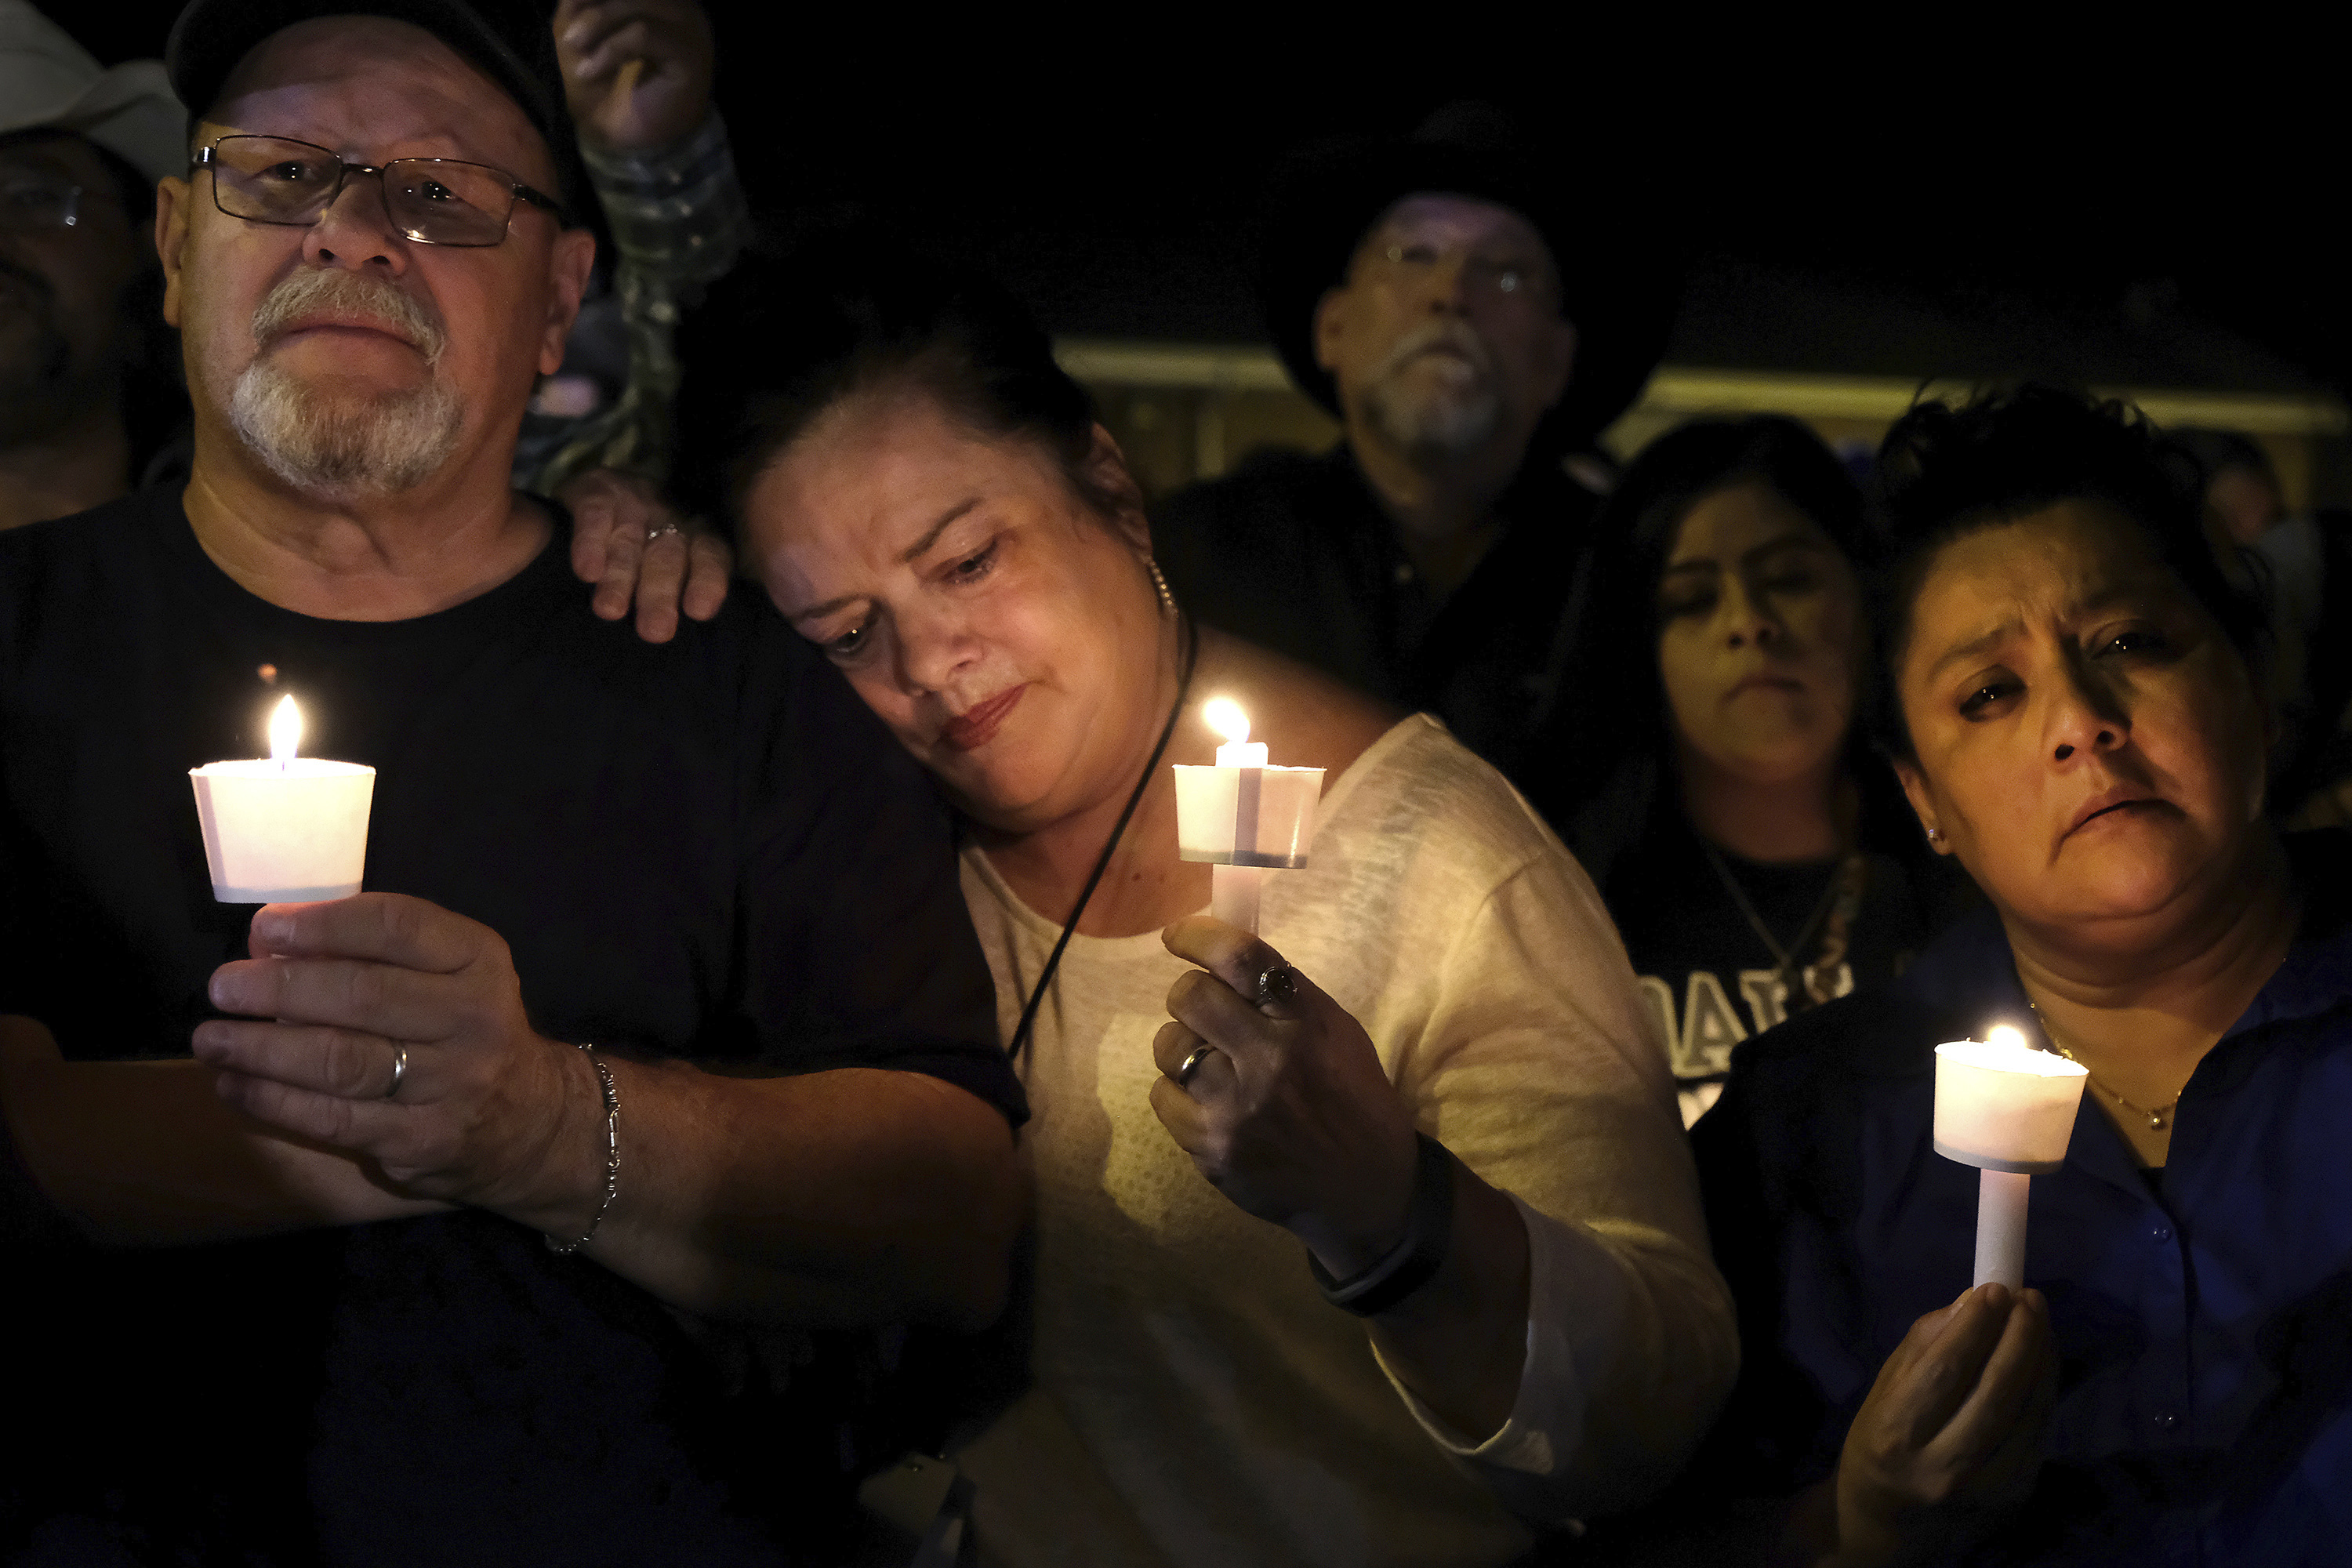 <div class='meta'><div class='origin-logo' data-origin='none'></div><span class='caption-text' data-credit='Laura Skelding/AP Photo'>Community members come together for a candlelight vigil for the victims of a deadly church shooting in Sutherland Springs, Texas, Sunday, Nov. 5, 2017.</span></div>